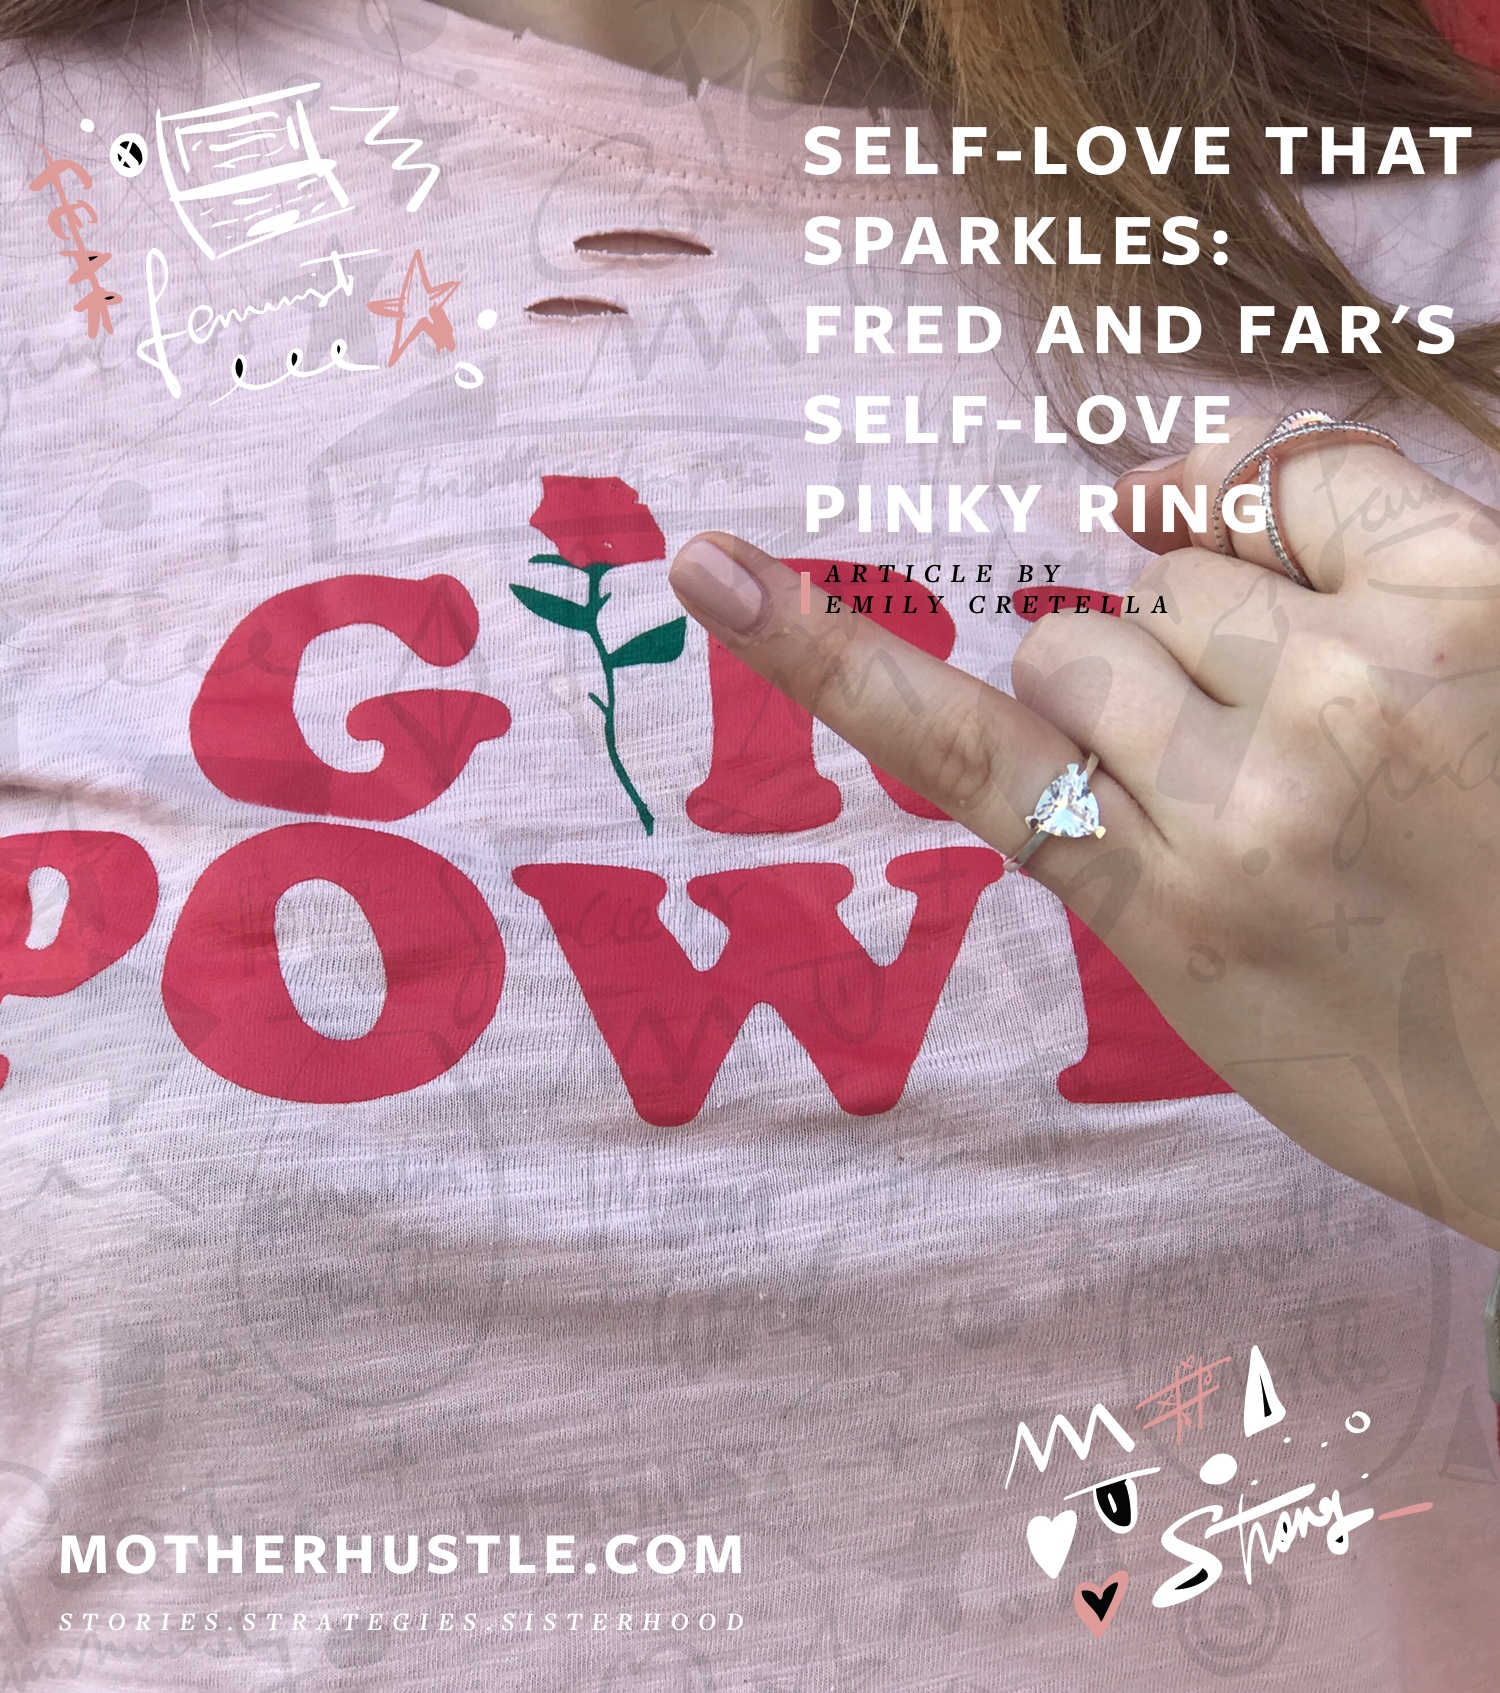 Self-Love That Sparkles- Fred And Far's Self-Love Pinky Ring - MotherHustle Fab Finds